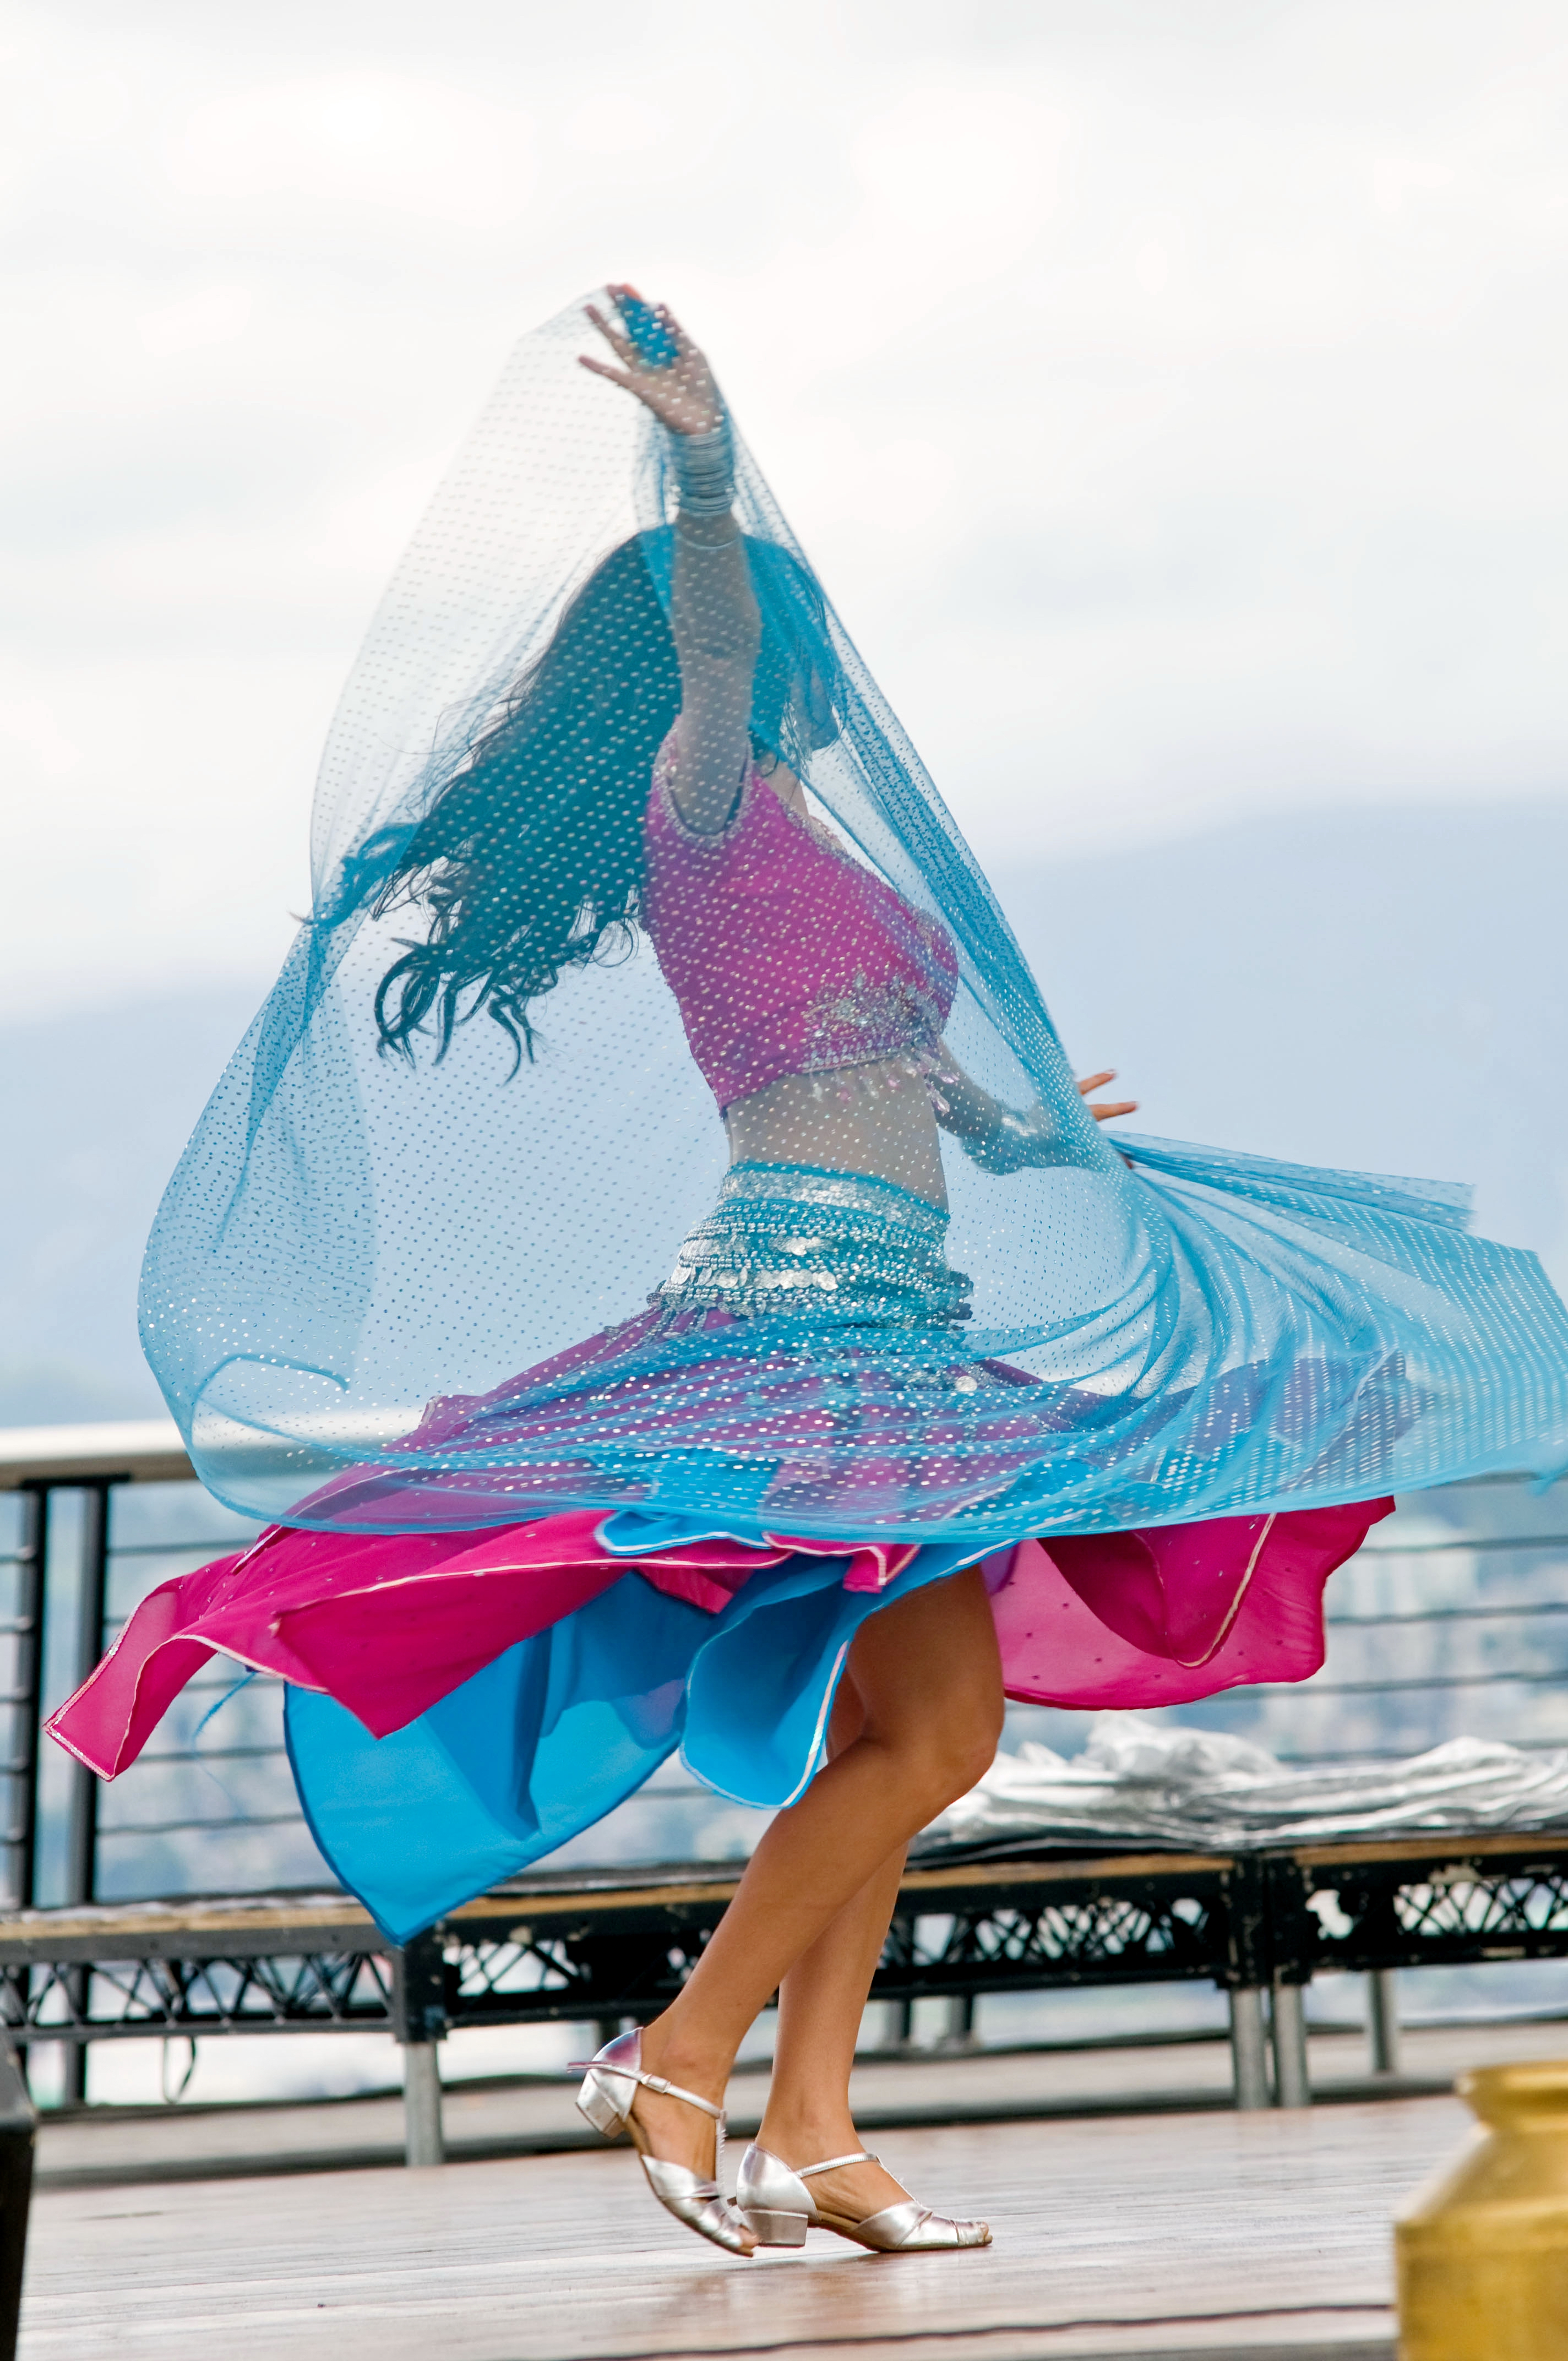 Images Dancing Girl File:belly Dancing Girl